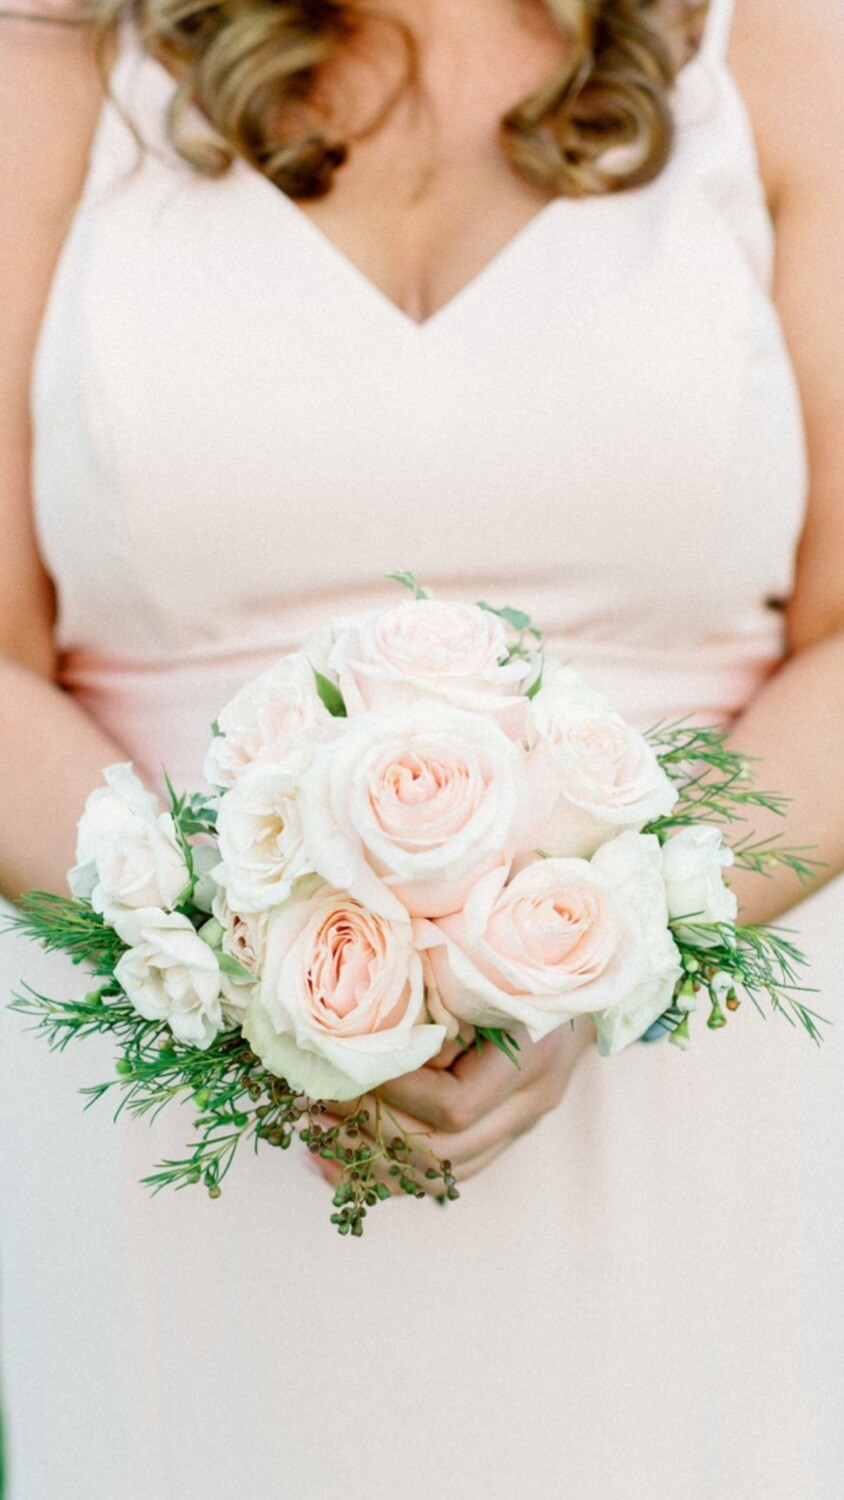 Bridal Bouquet-Bridesmaid Flowers To Wear